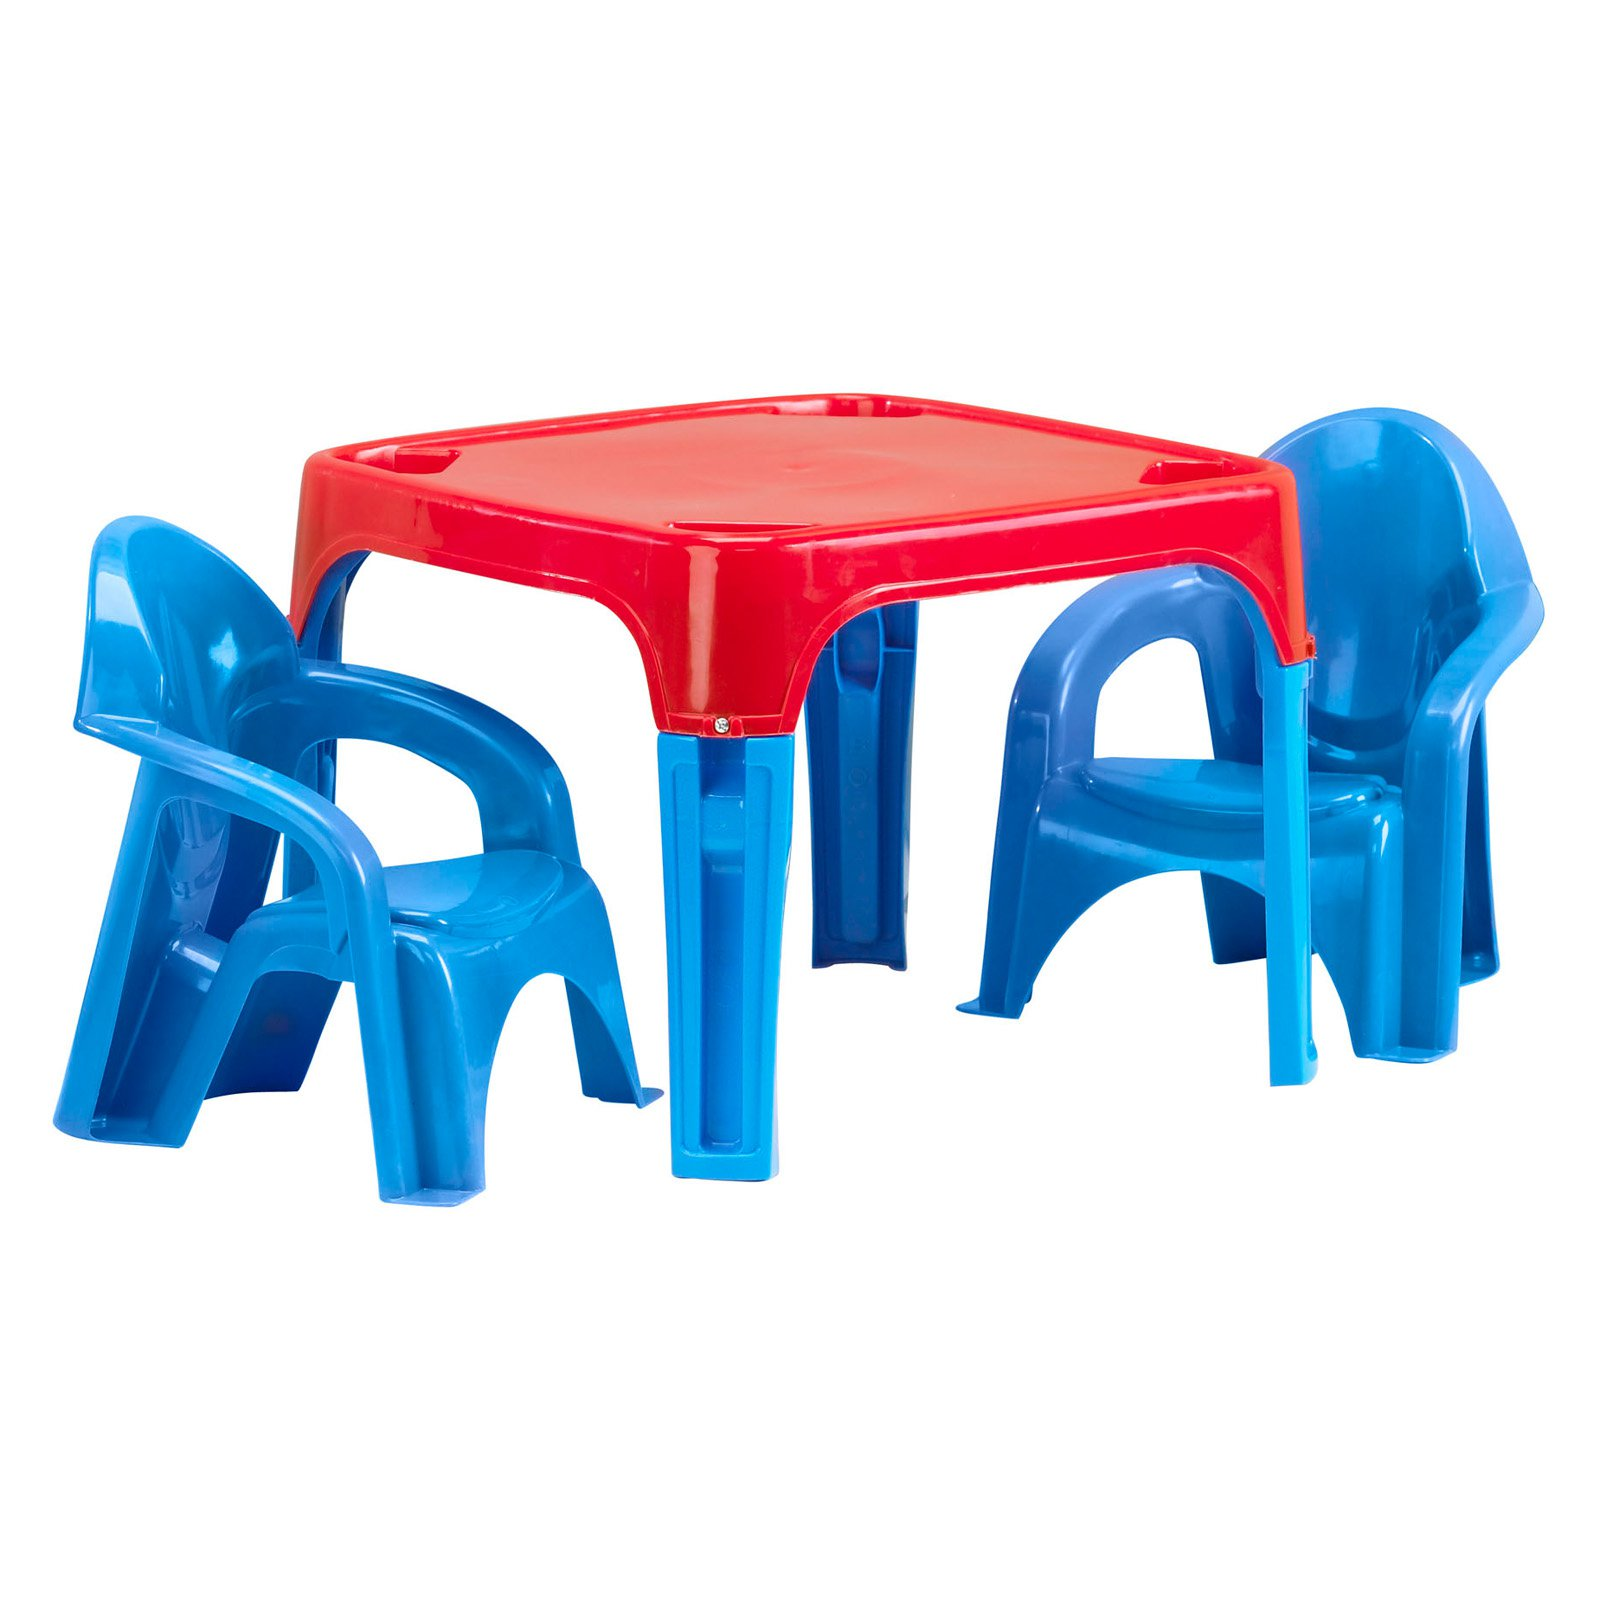 American Plastic Toys Kids Table and Chairs - Walmart.com